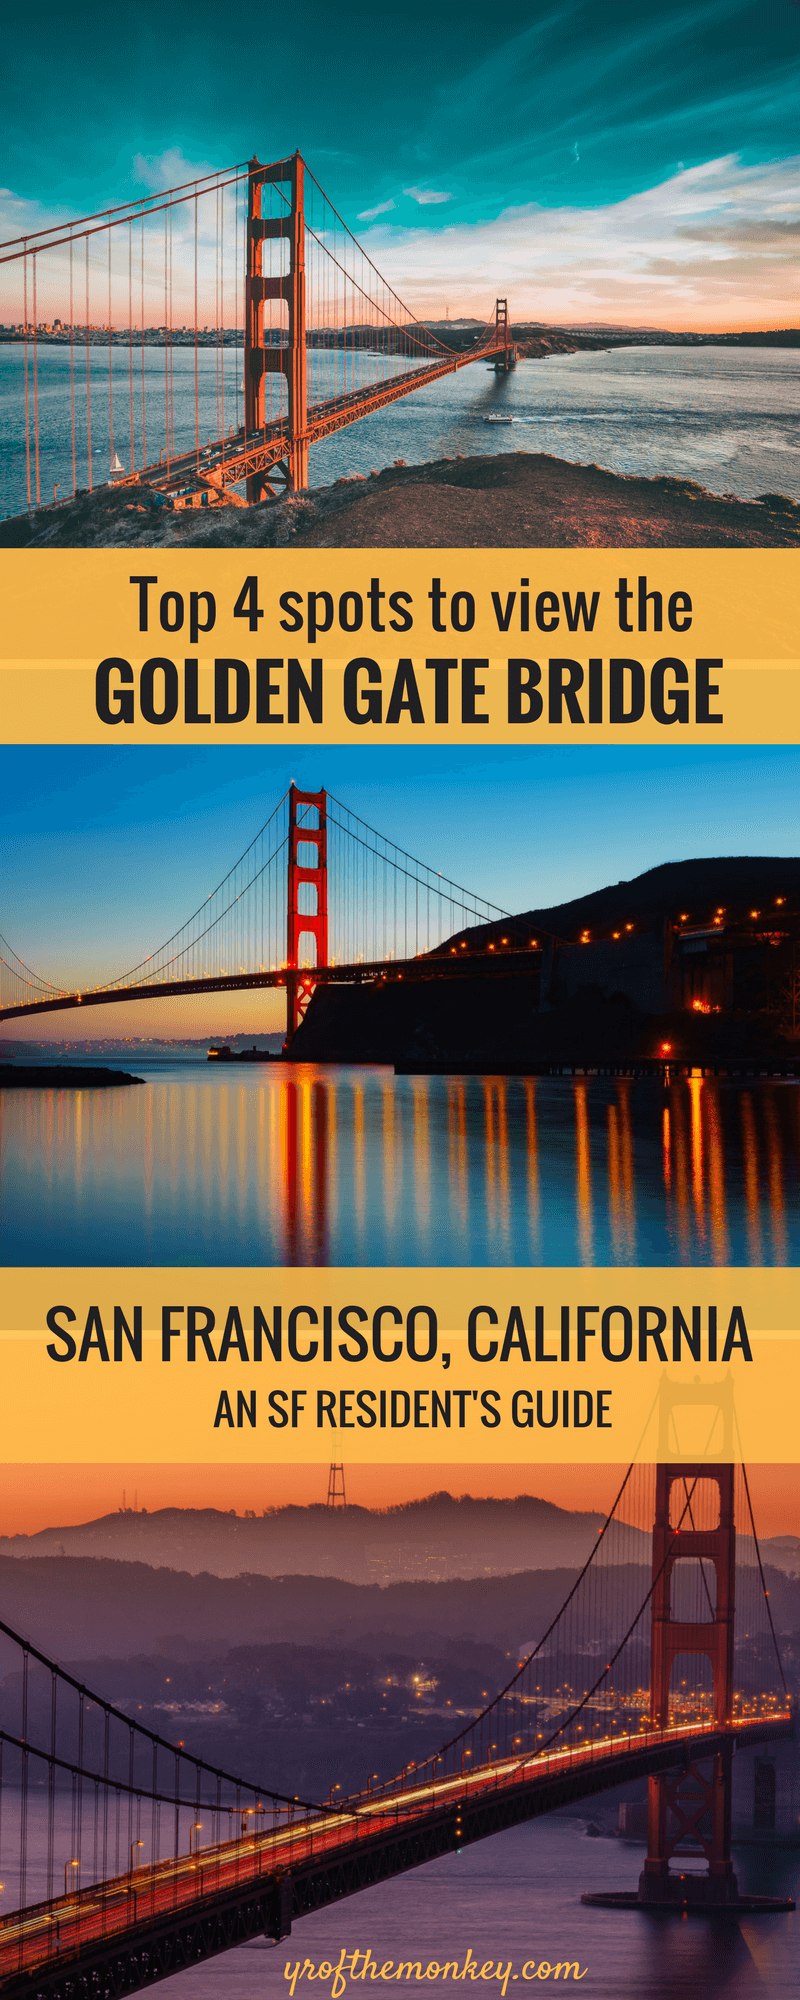 Where can you find the best views of the Golden Gate Bridge, San Francisco, California, USA? This local's guide tells you the BEST four spots to get the most sweeping views of the iconic Golden Gate bridge from in and around San Francisco, Bay Area. Read this insider guide to know the local's secret spots and pin it to your California travel board now! A must read for photographers! #bayarea #californiatravel #california #sanfrancisco #USA #goldengatebridge #northamerica